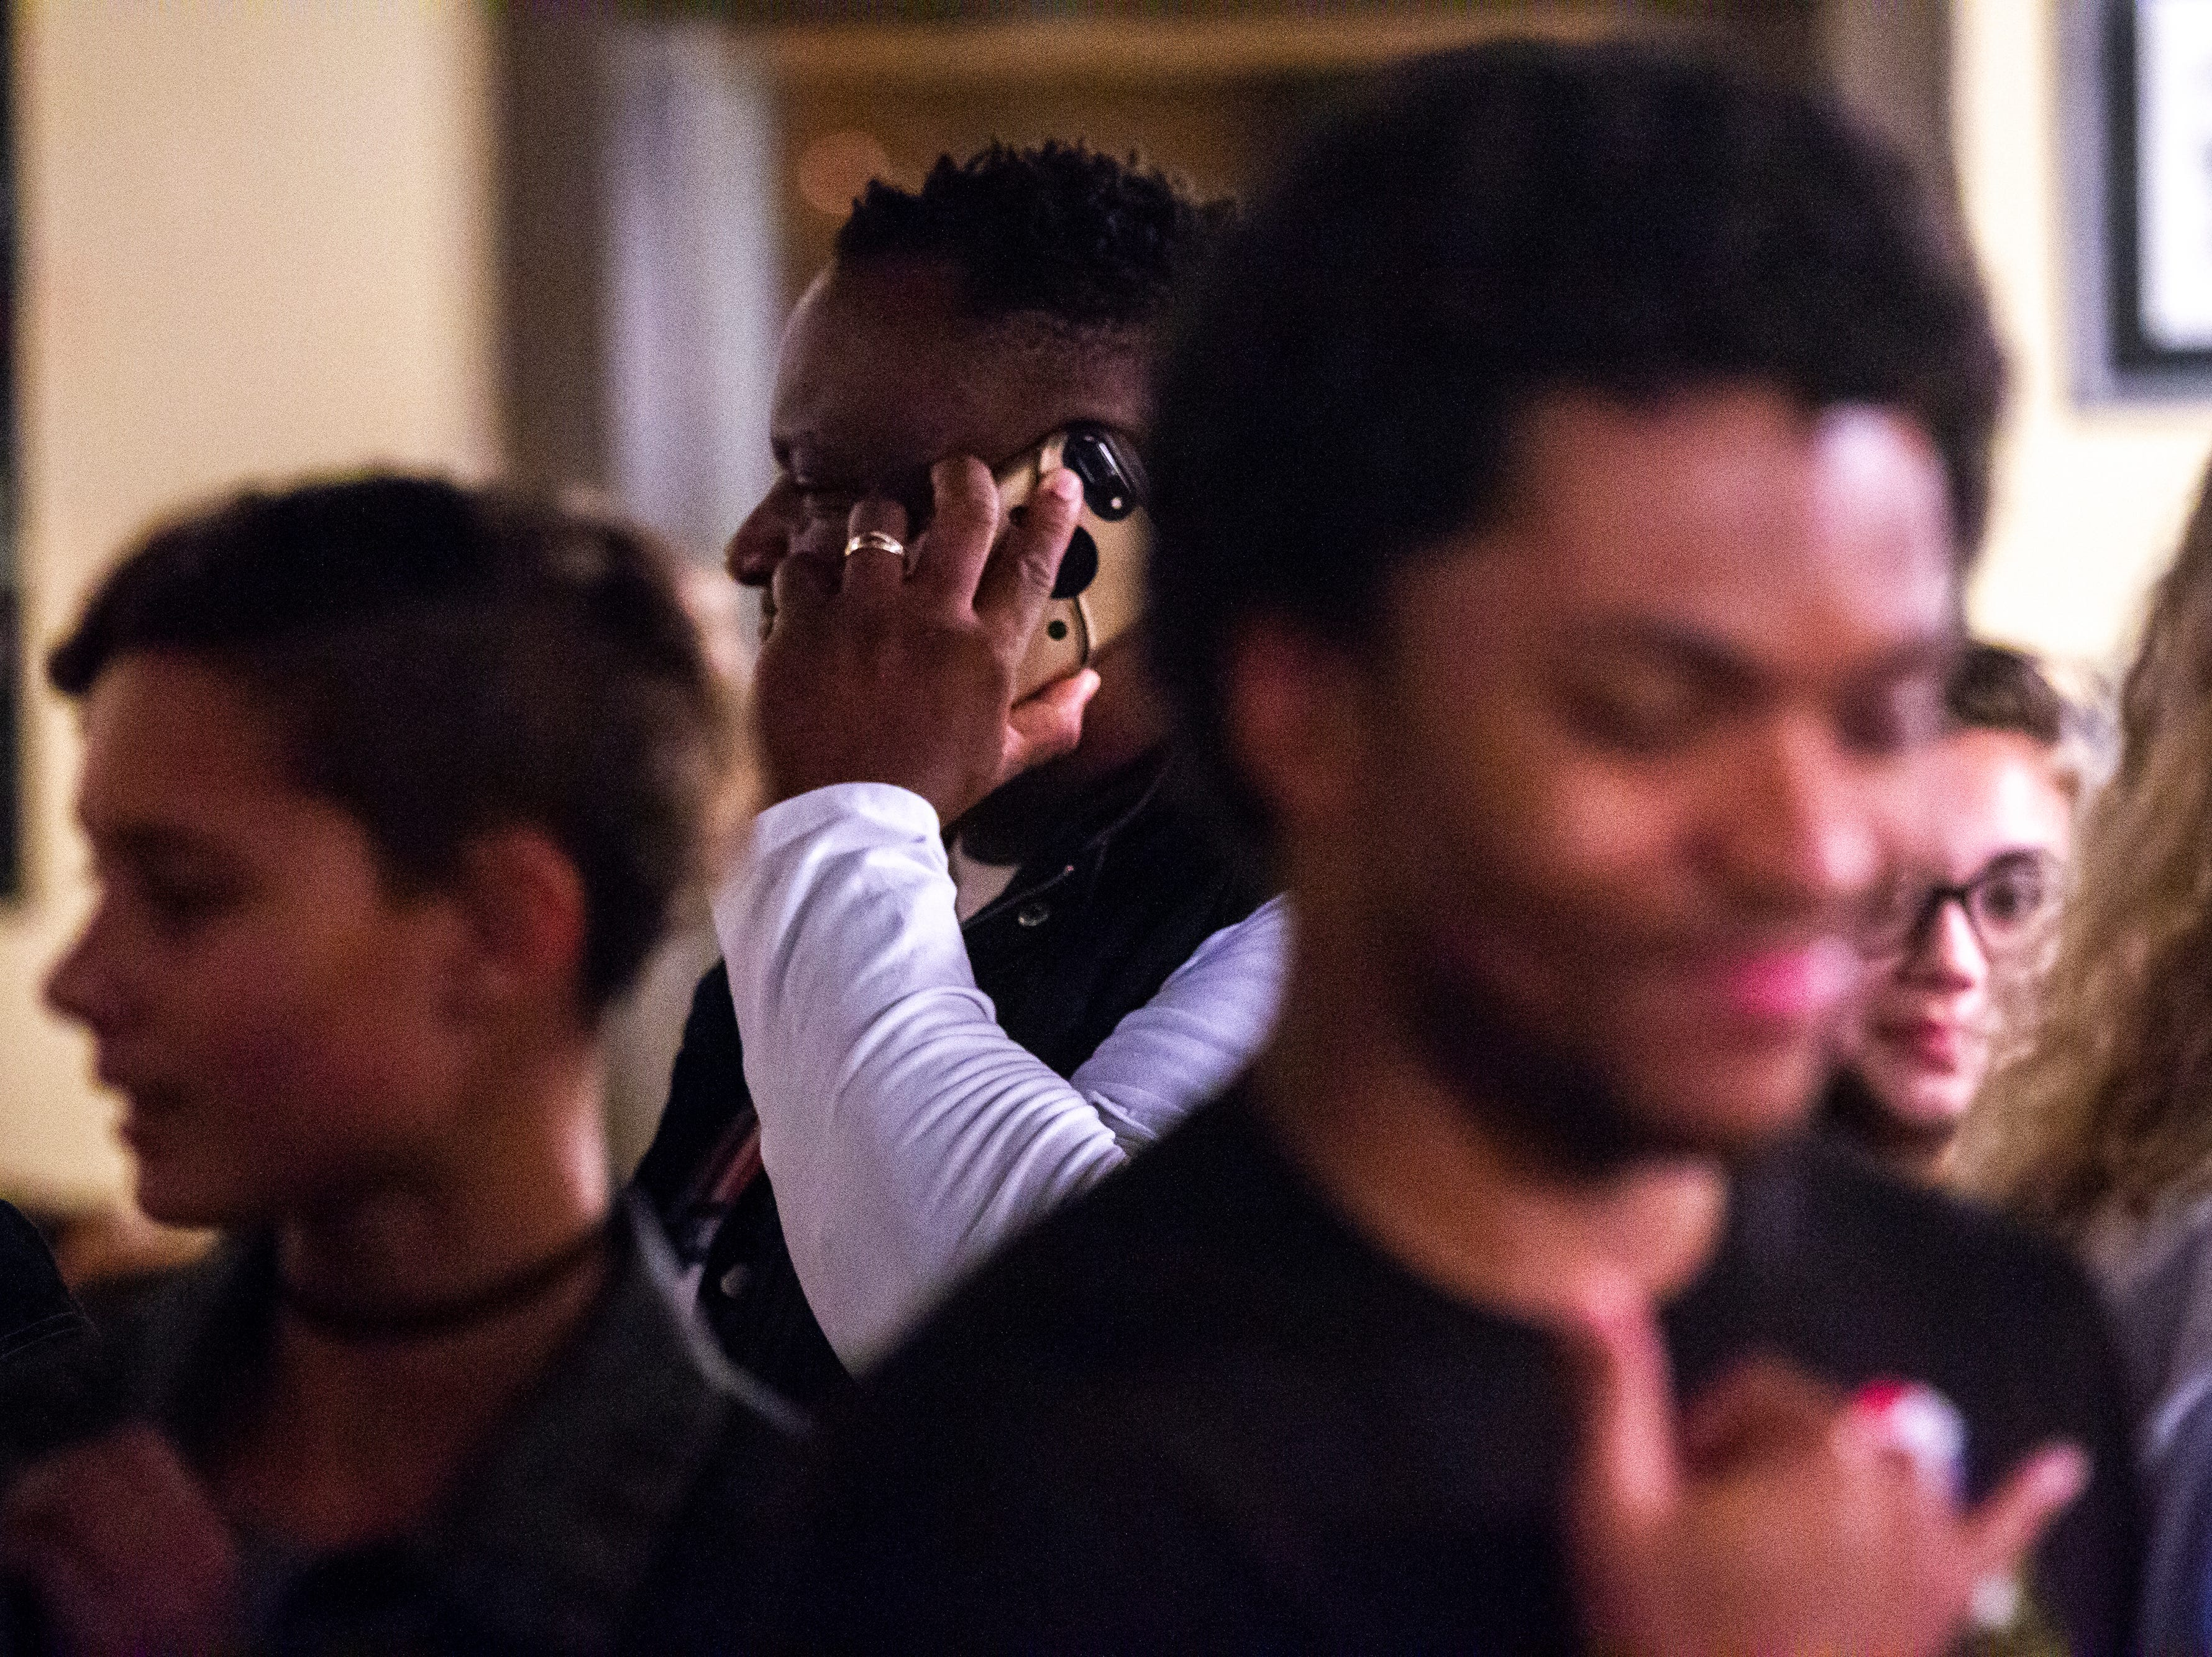 Bruce Teague takes a phone call while celebrating with supporters after the final precinct reported its votes on Tuesday, Oct. 2, 2018, at Billy's High Hat Diner on Iowa Avenue in Iowa City.